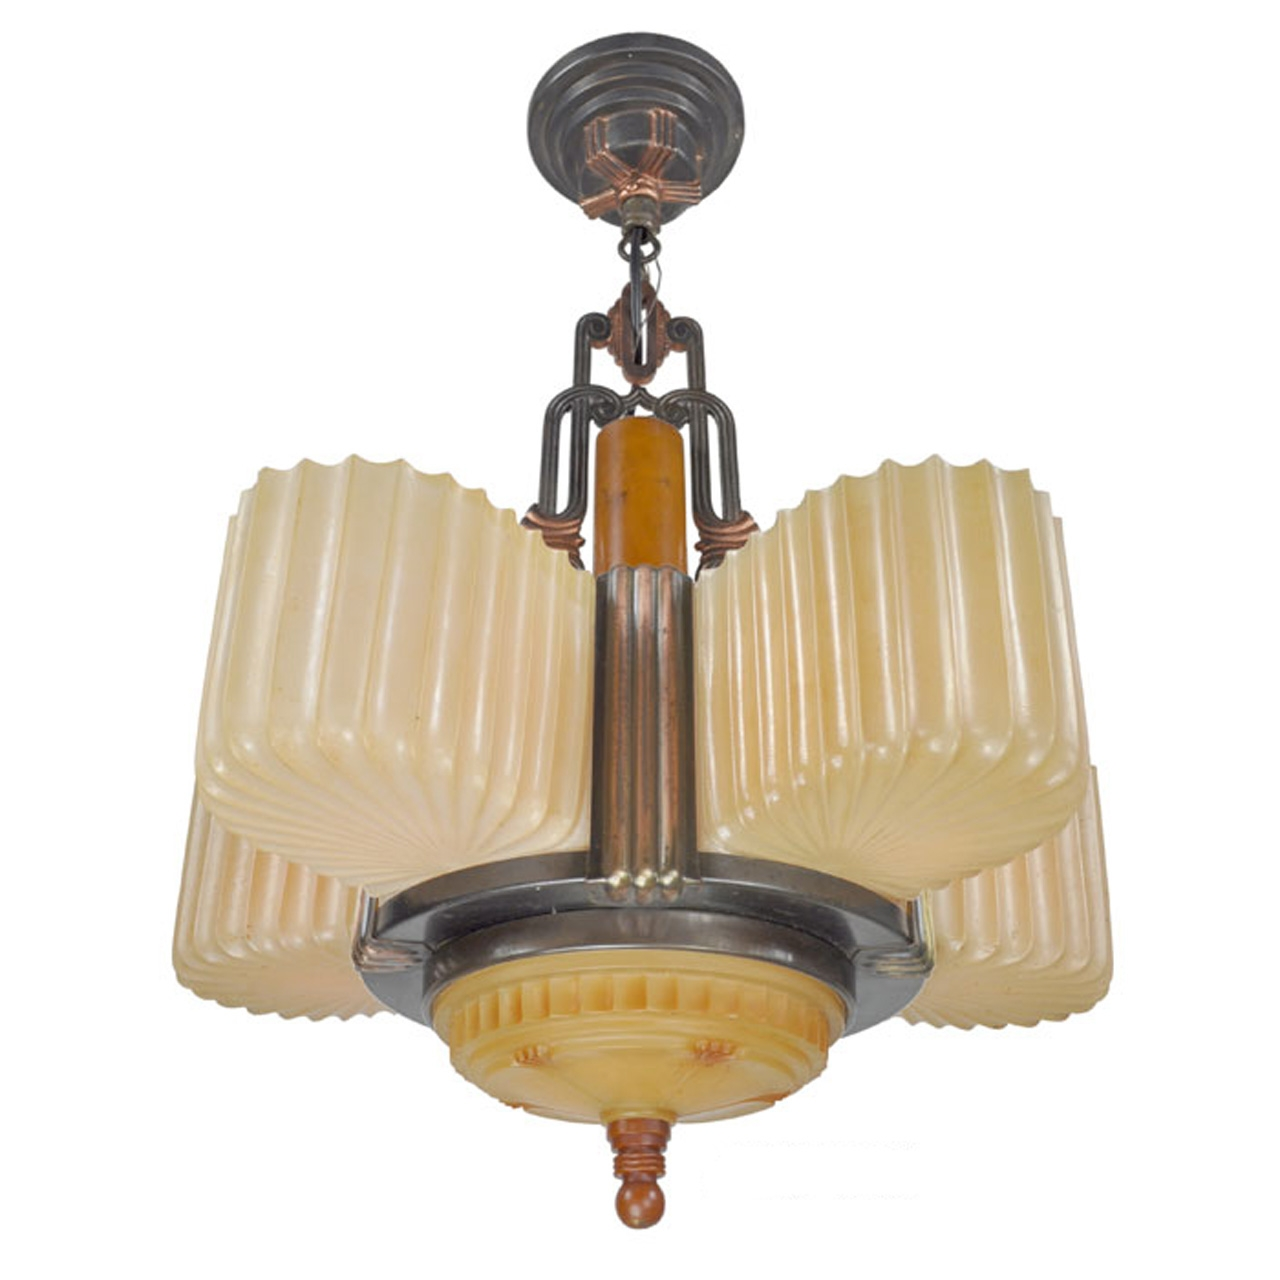 Antique Art Deco Chandelier Antique Furniture Throughout Art Deco Chandeliers (View 14 of 15)